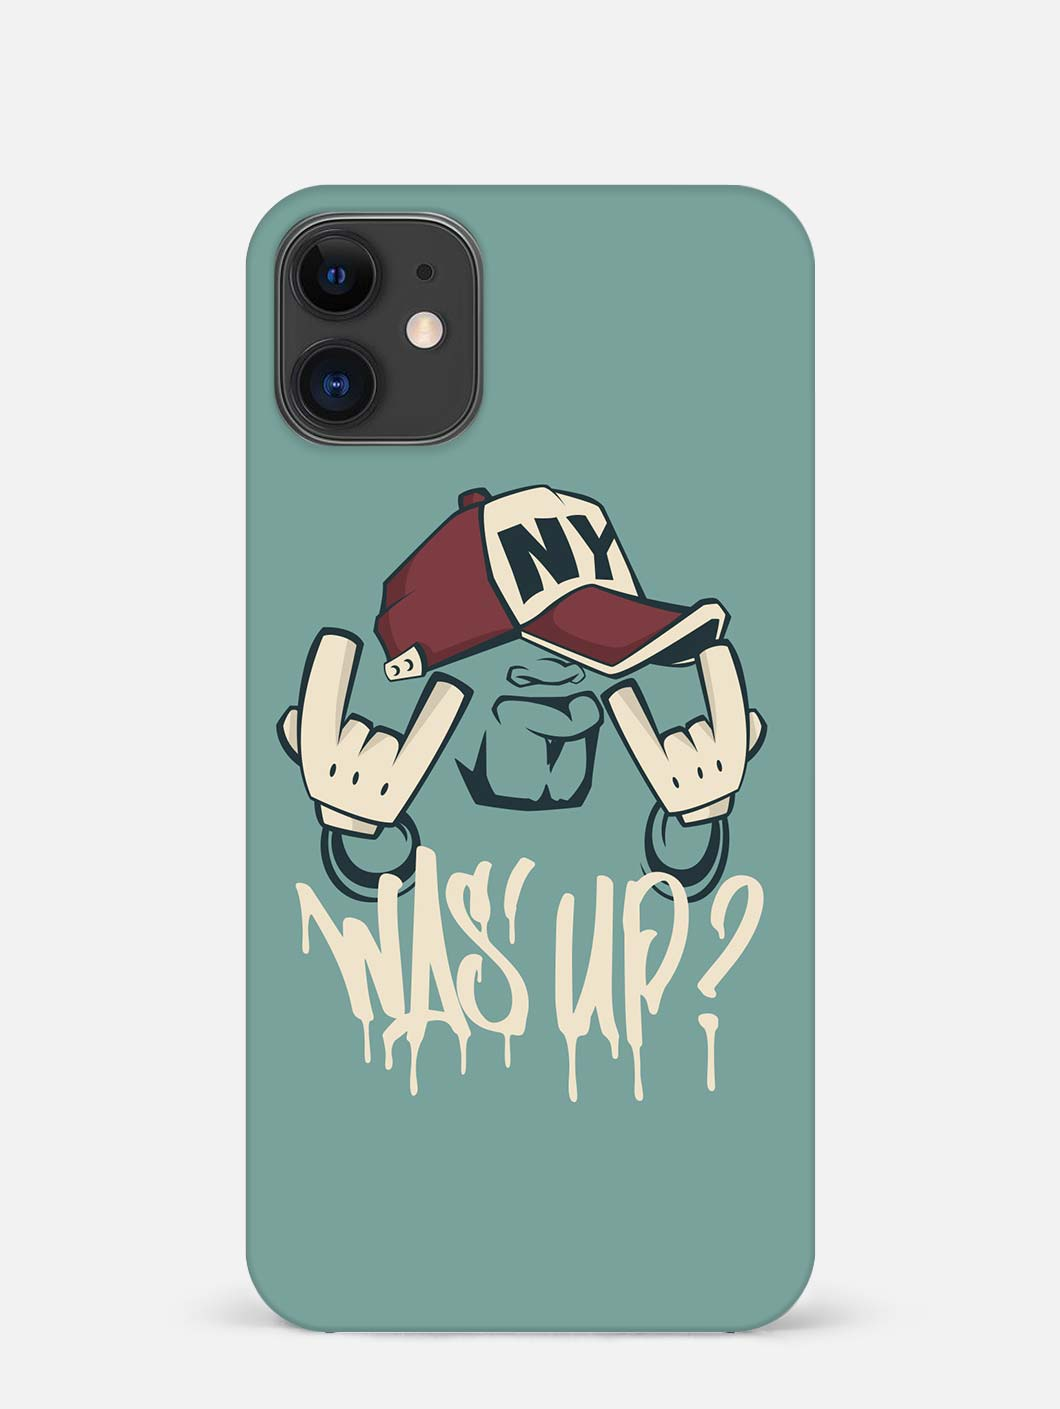 Was'up iPhone 12 Mini Mobile Cover